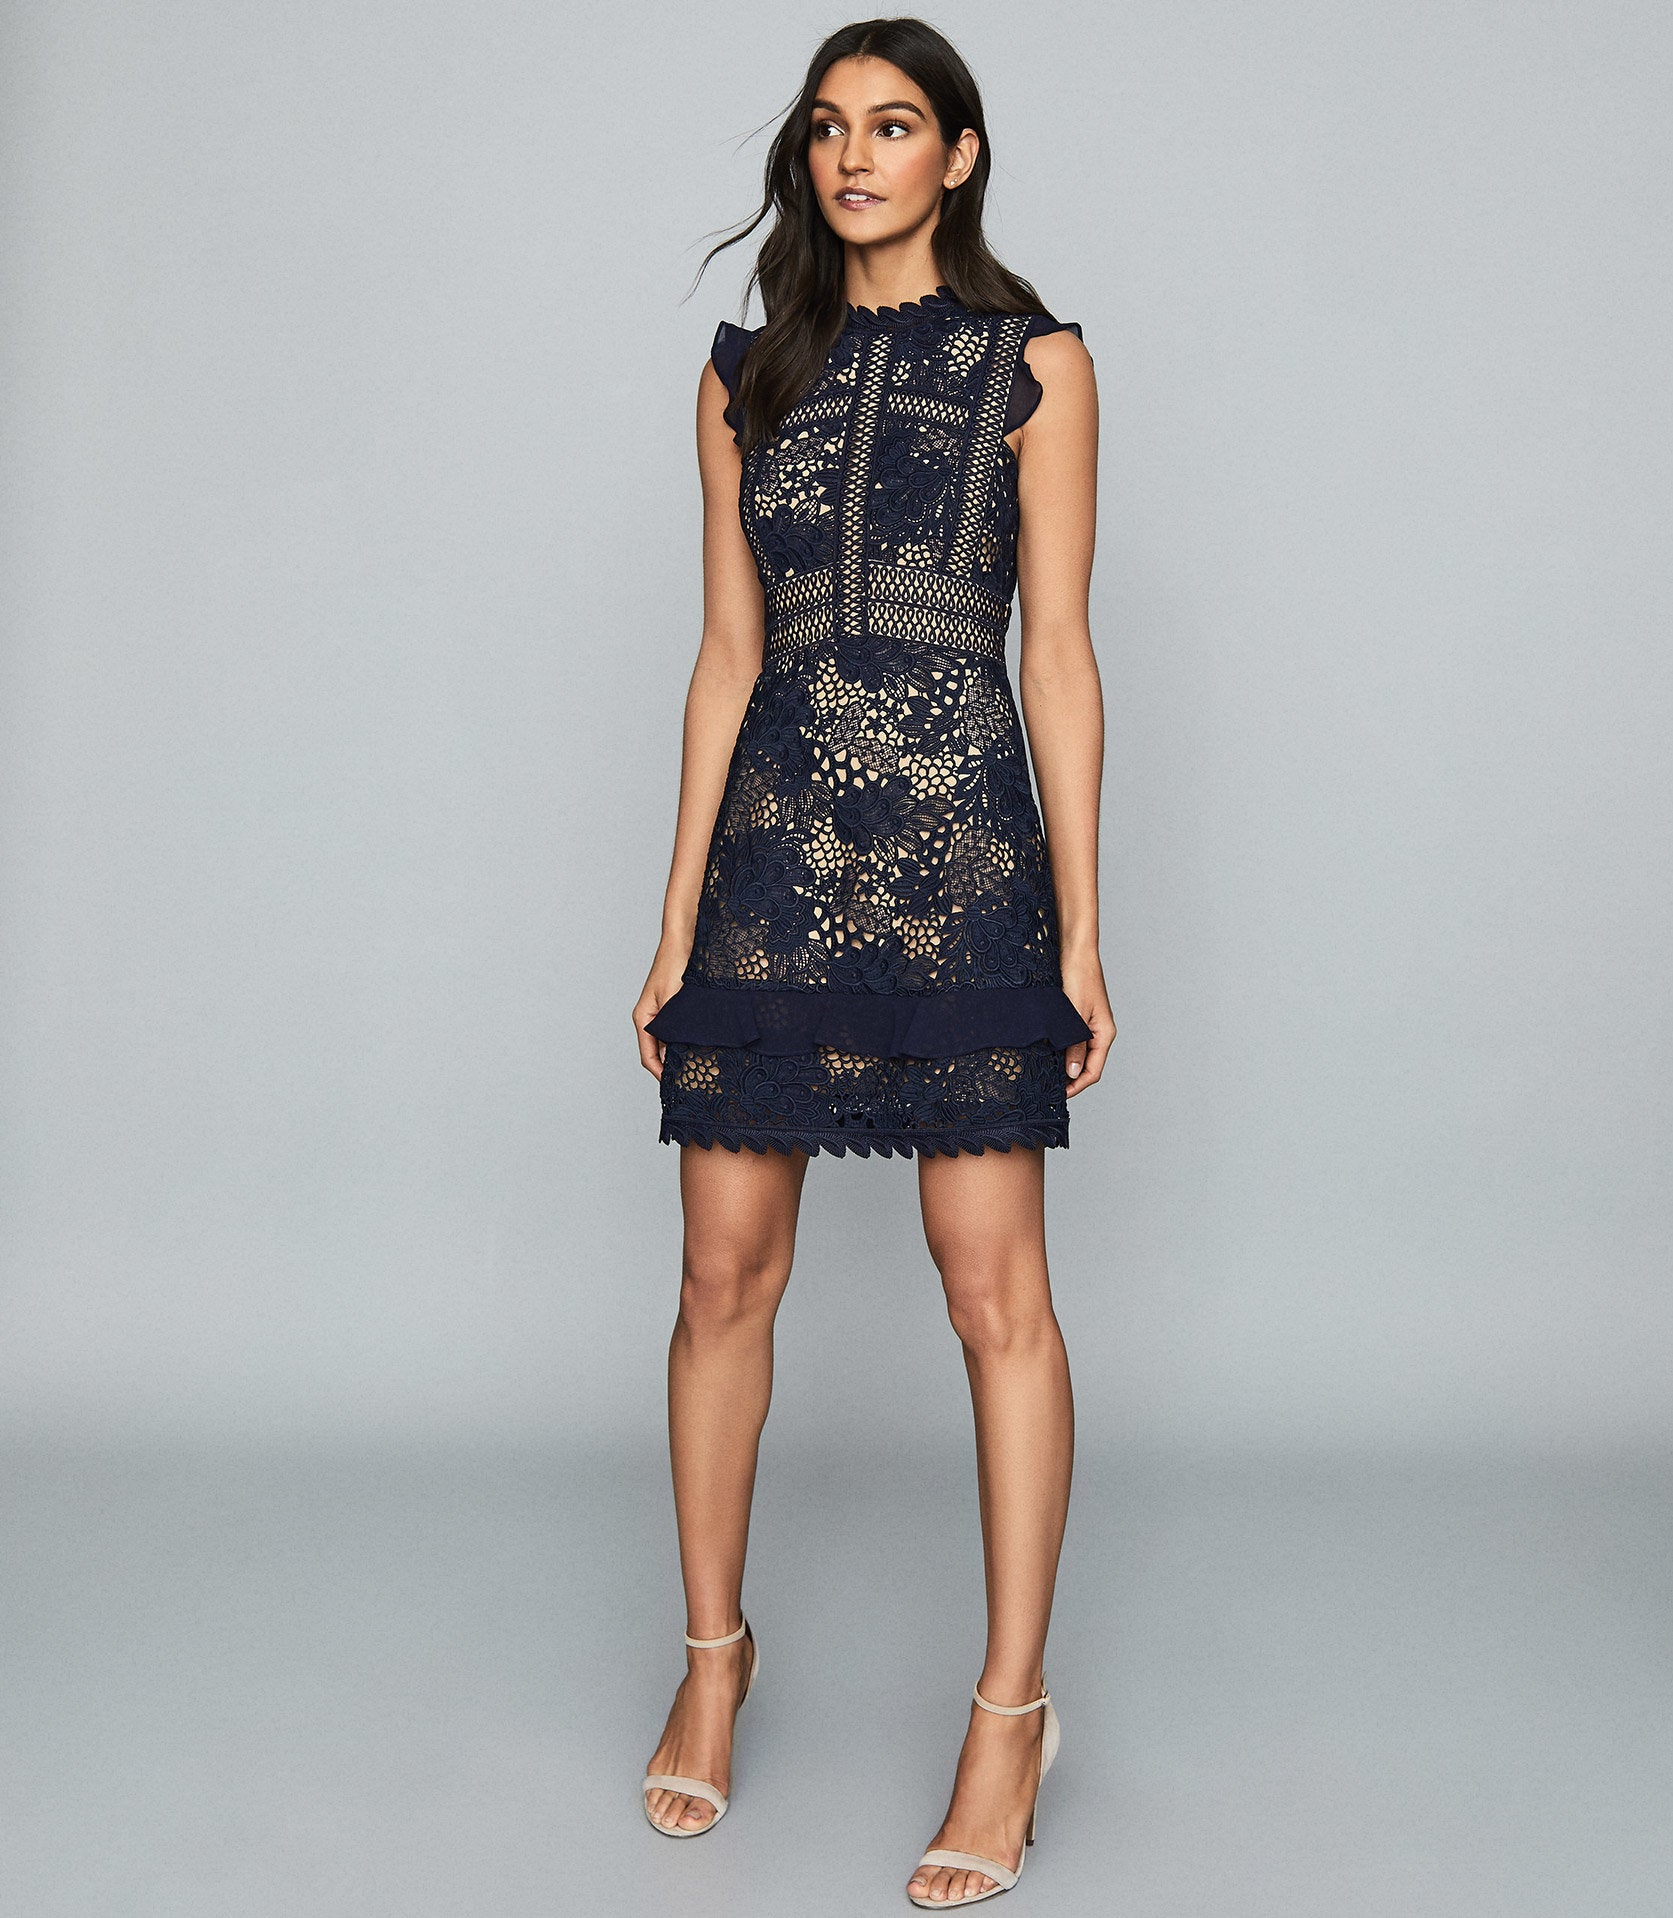 reiss dresses sale